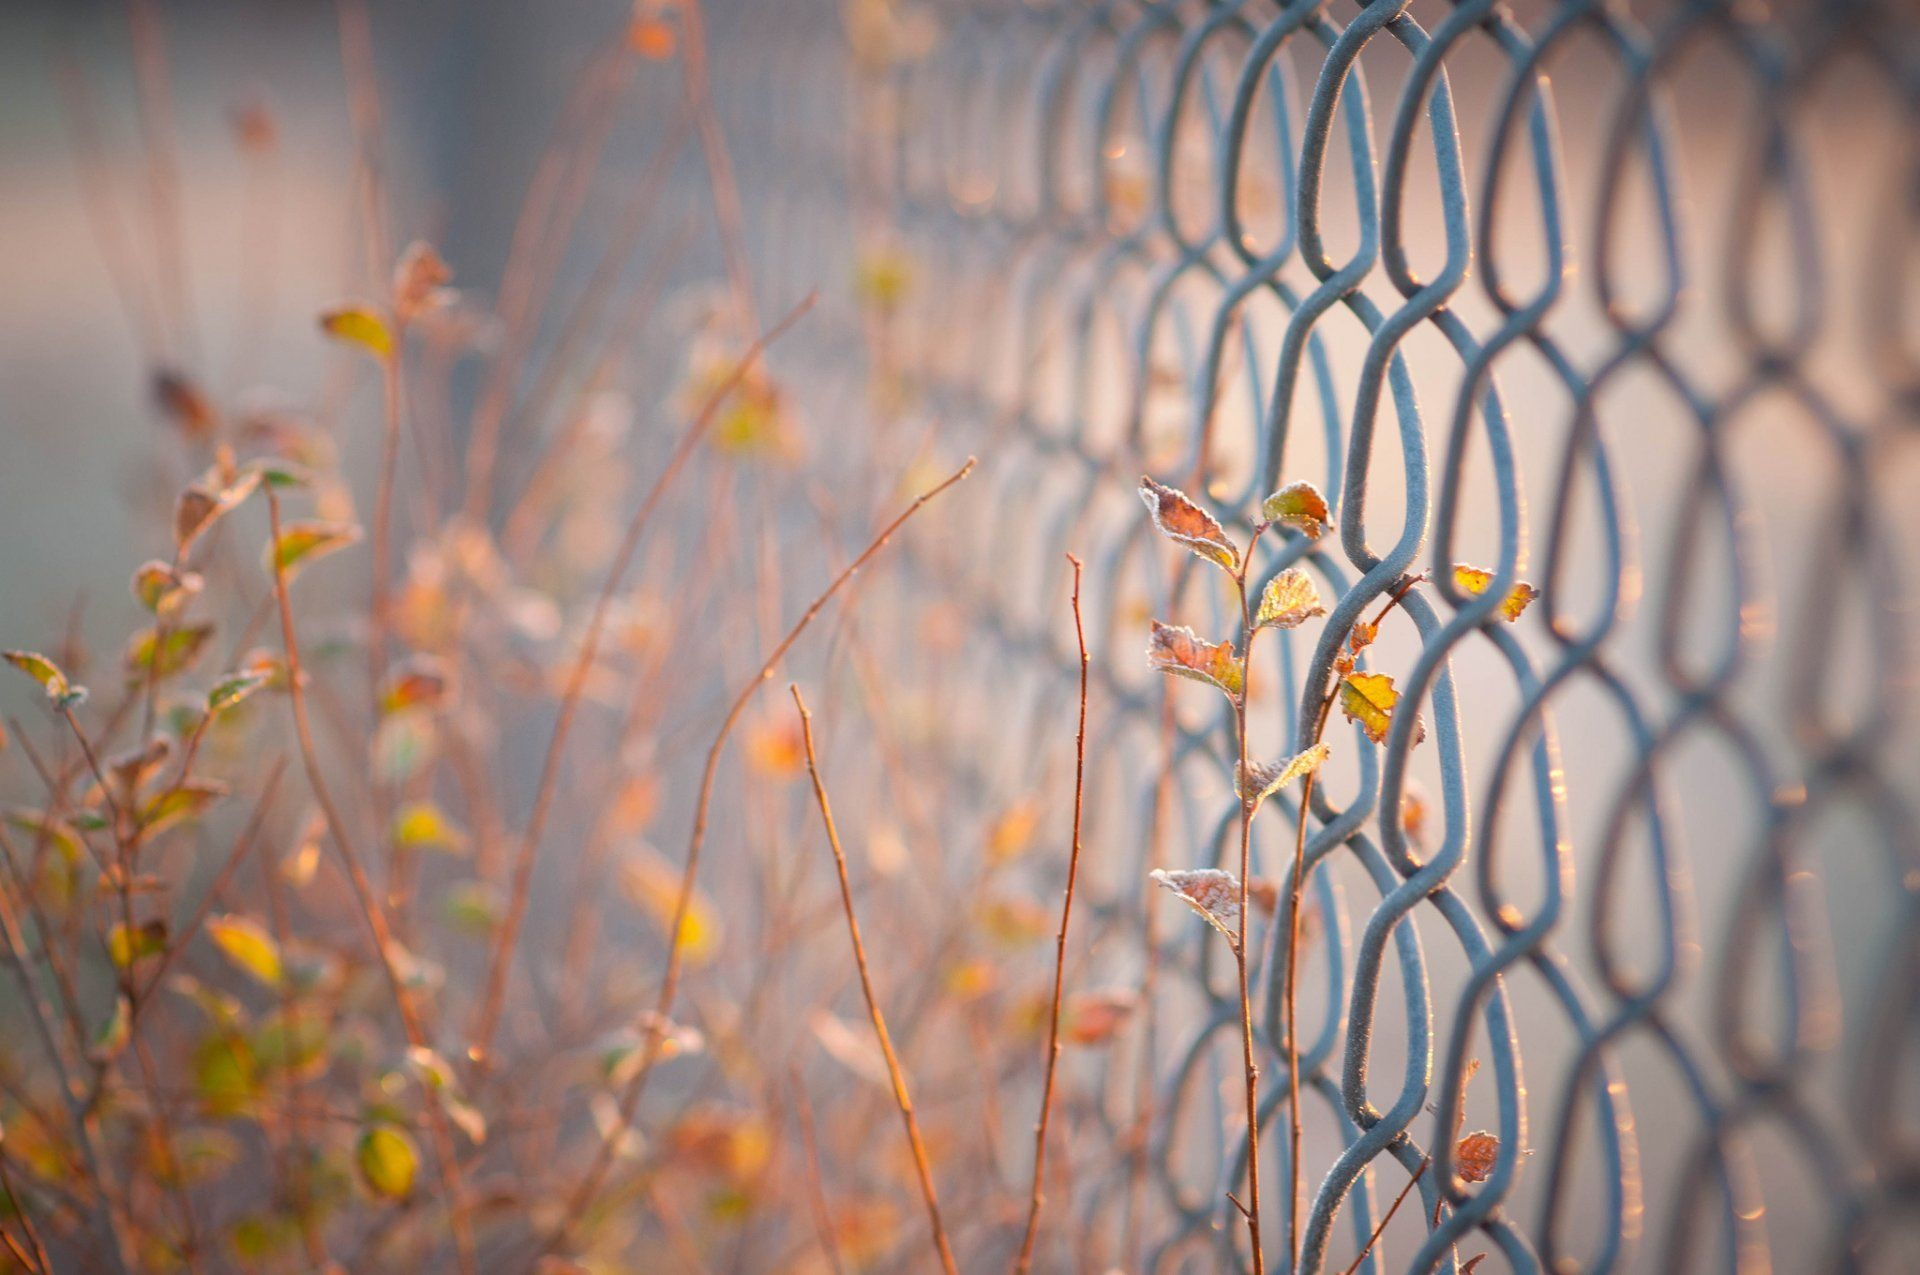 Close Net Gates Fence Fencing Leaves Blur Background Wallpaper Widescreen Full Screen Hd Wallpapers Fullscreen Hd Wallpaper Blur Background Photography Picsart Background Dslr Background Images